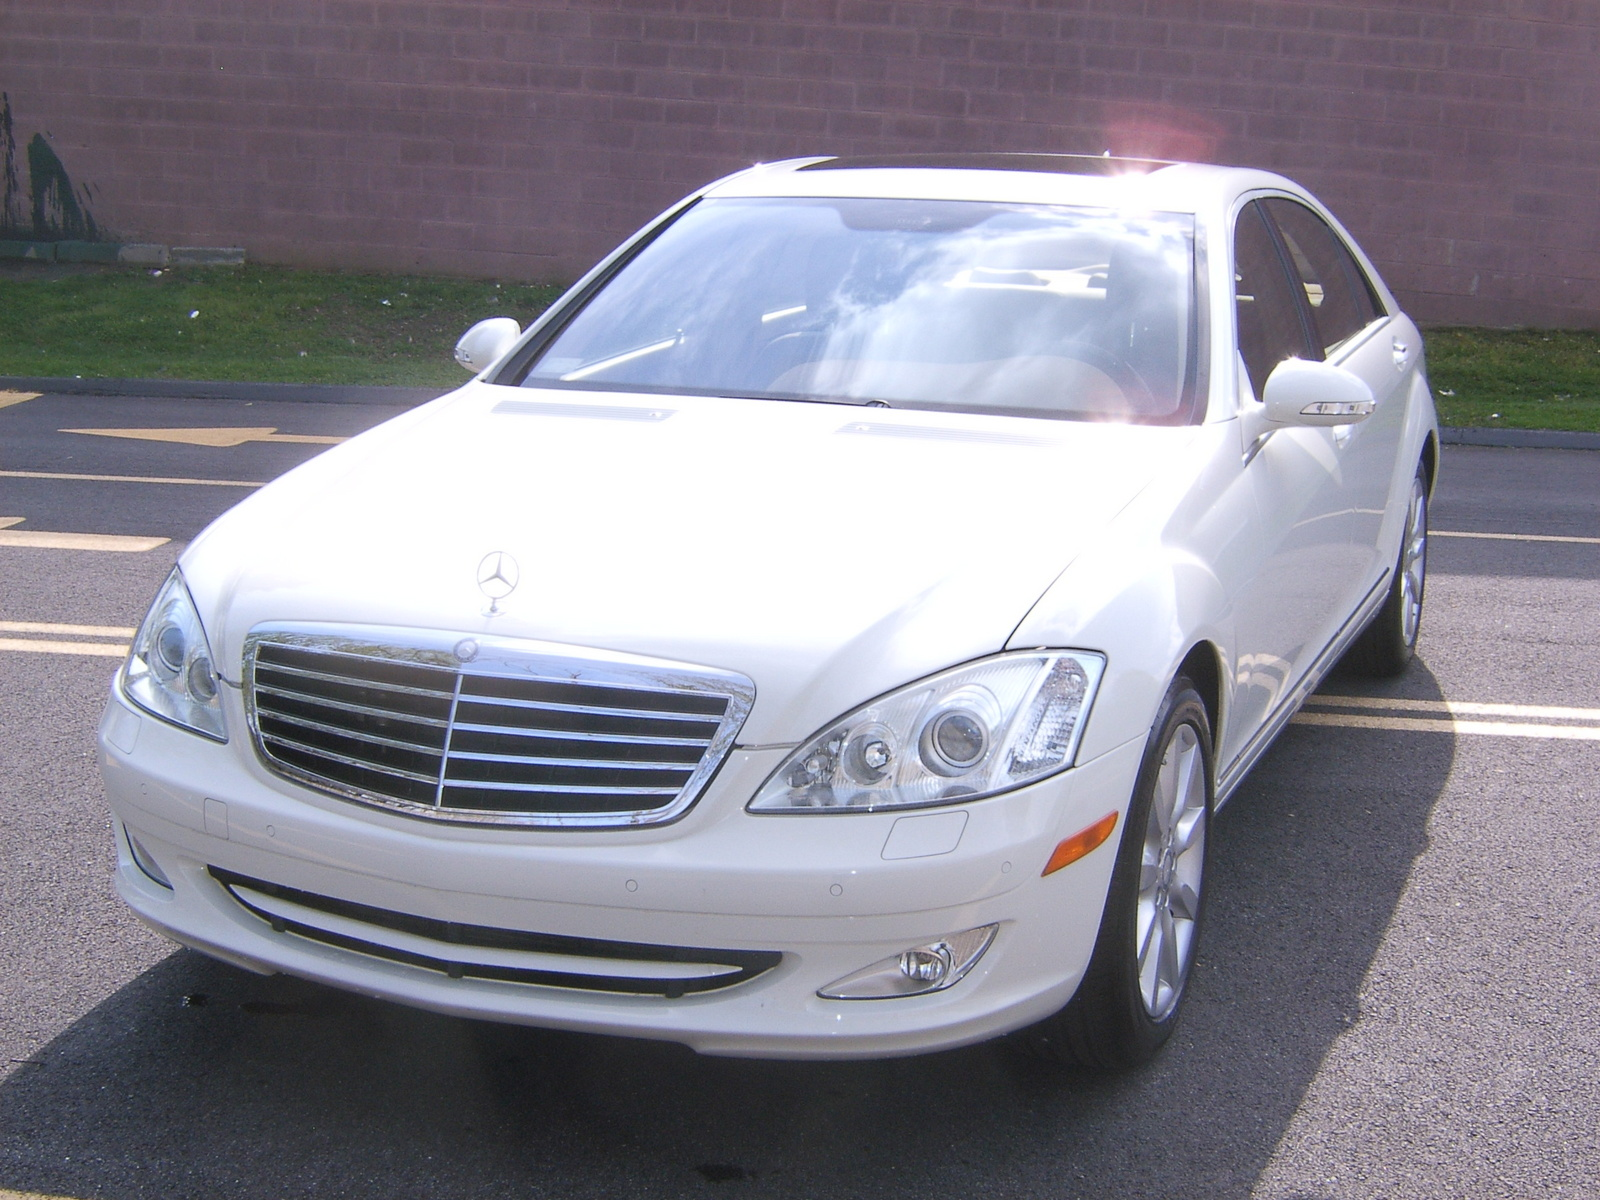 2008 mercedes benz s class pictures cargurus for Mercedes benz s550 4matic price